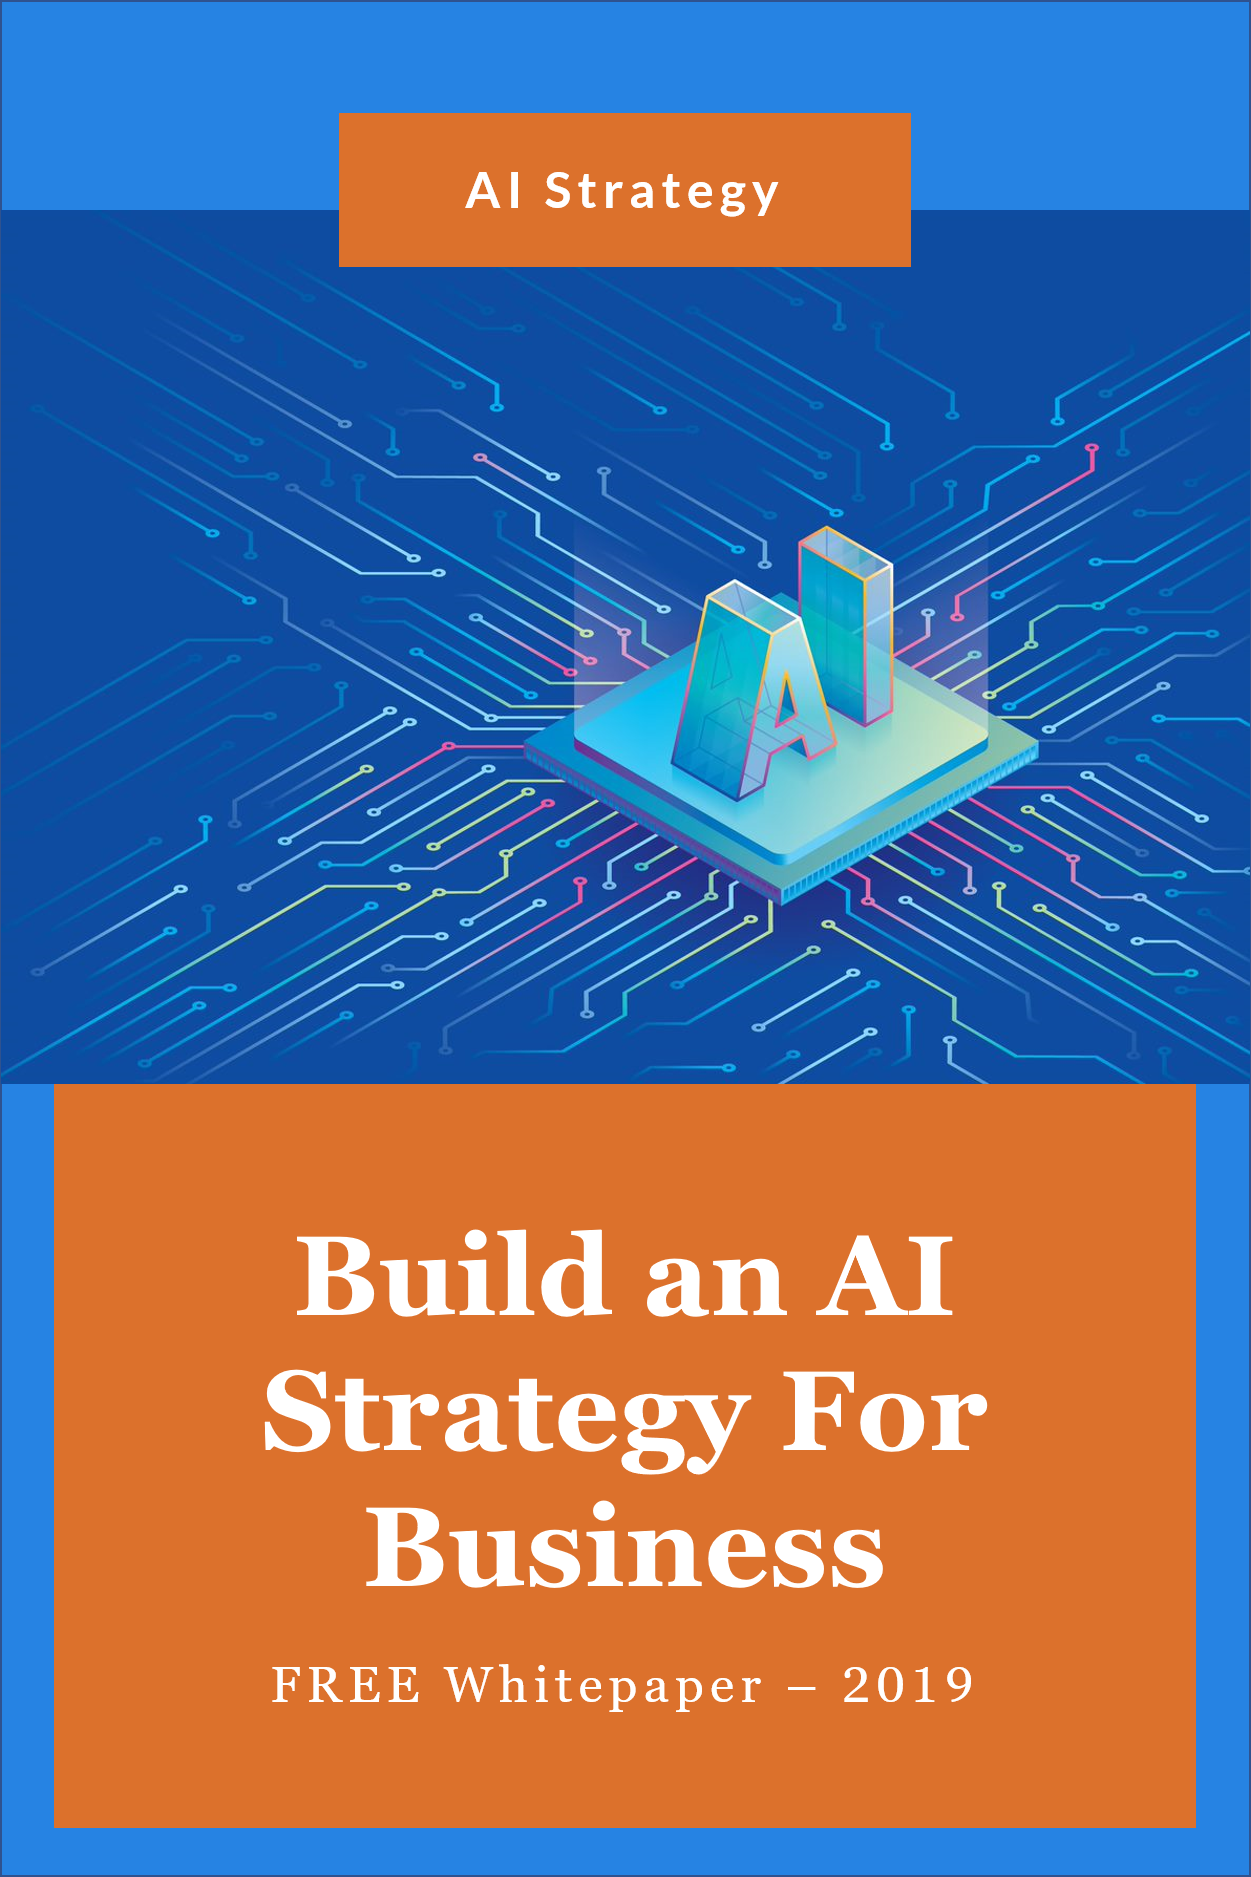 Artificialintelligence Ai Has Been One Of The Top Industry Buzzwords In Recent Years Many Organizations Strategies Whitepaper Business Strategy